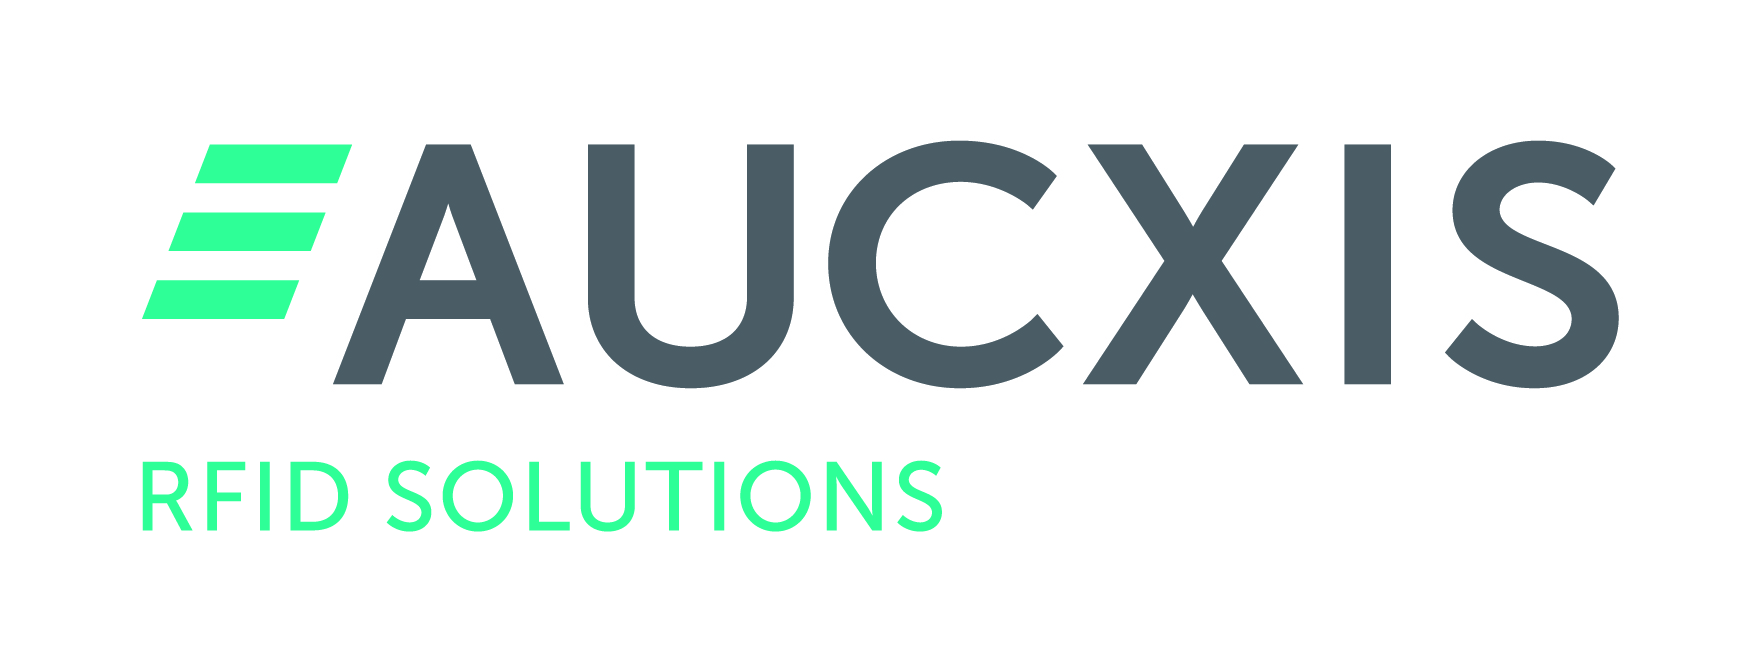 Aucxis-rfid-solutions-1